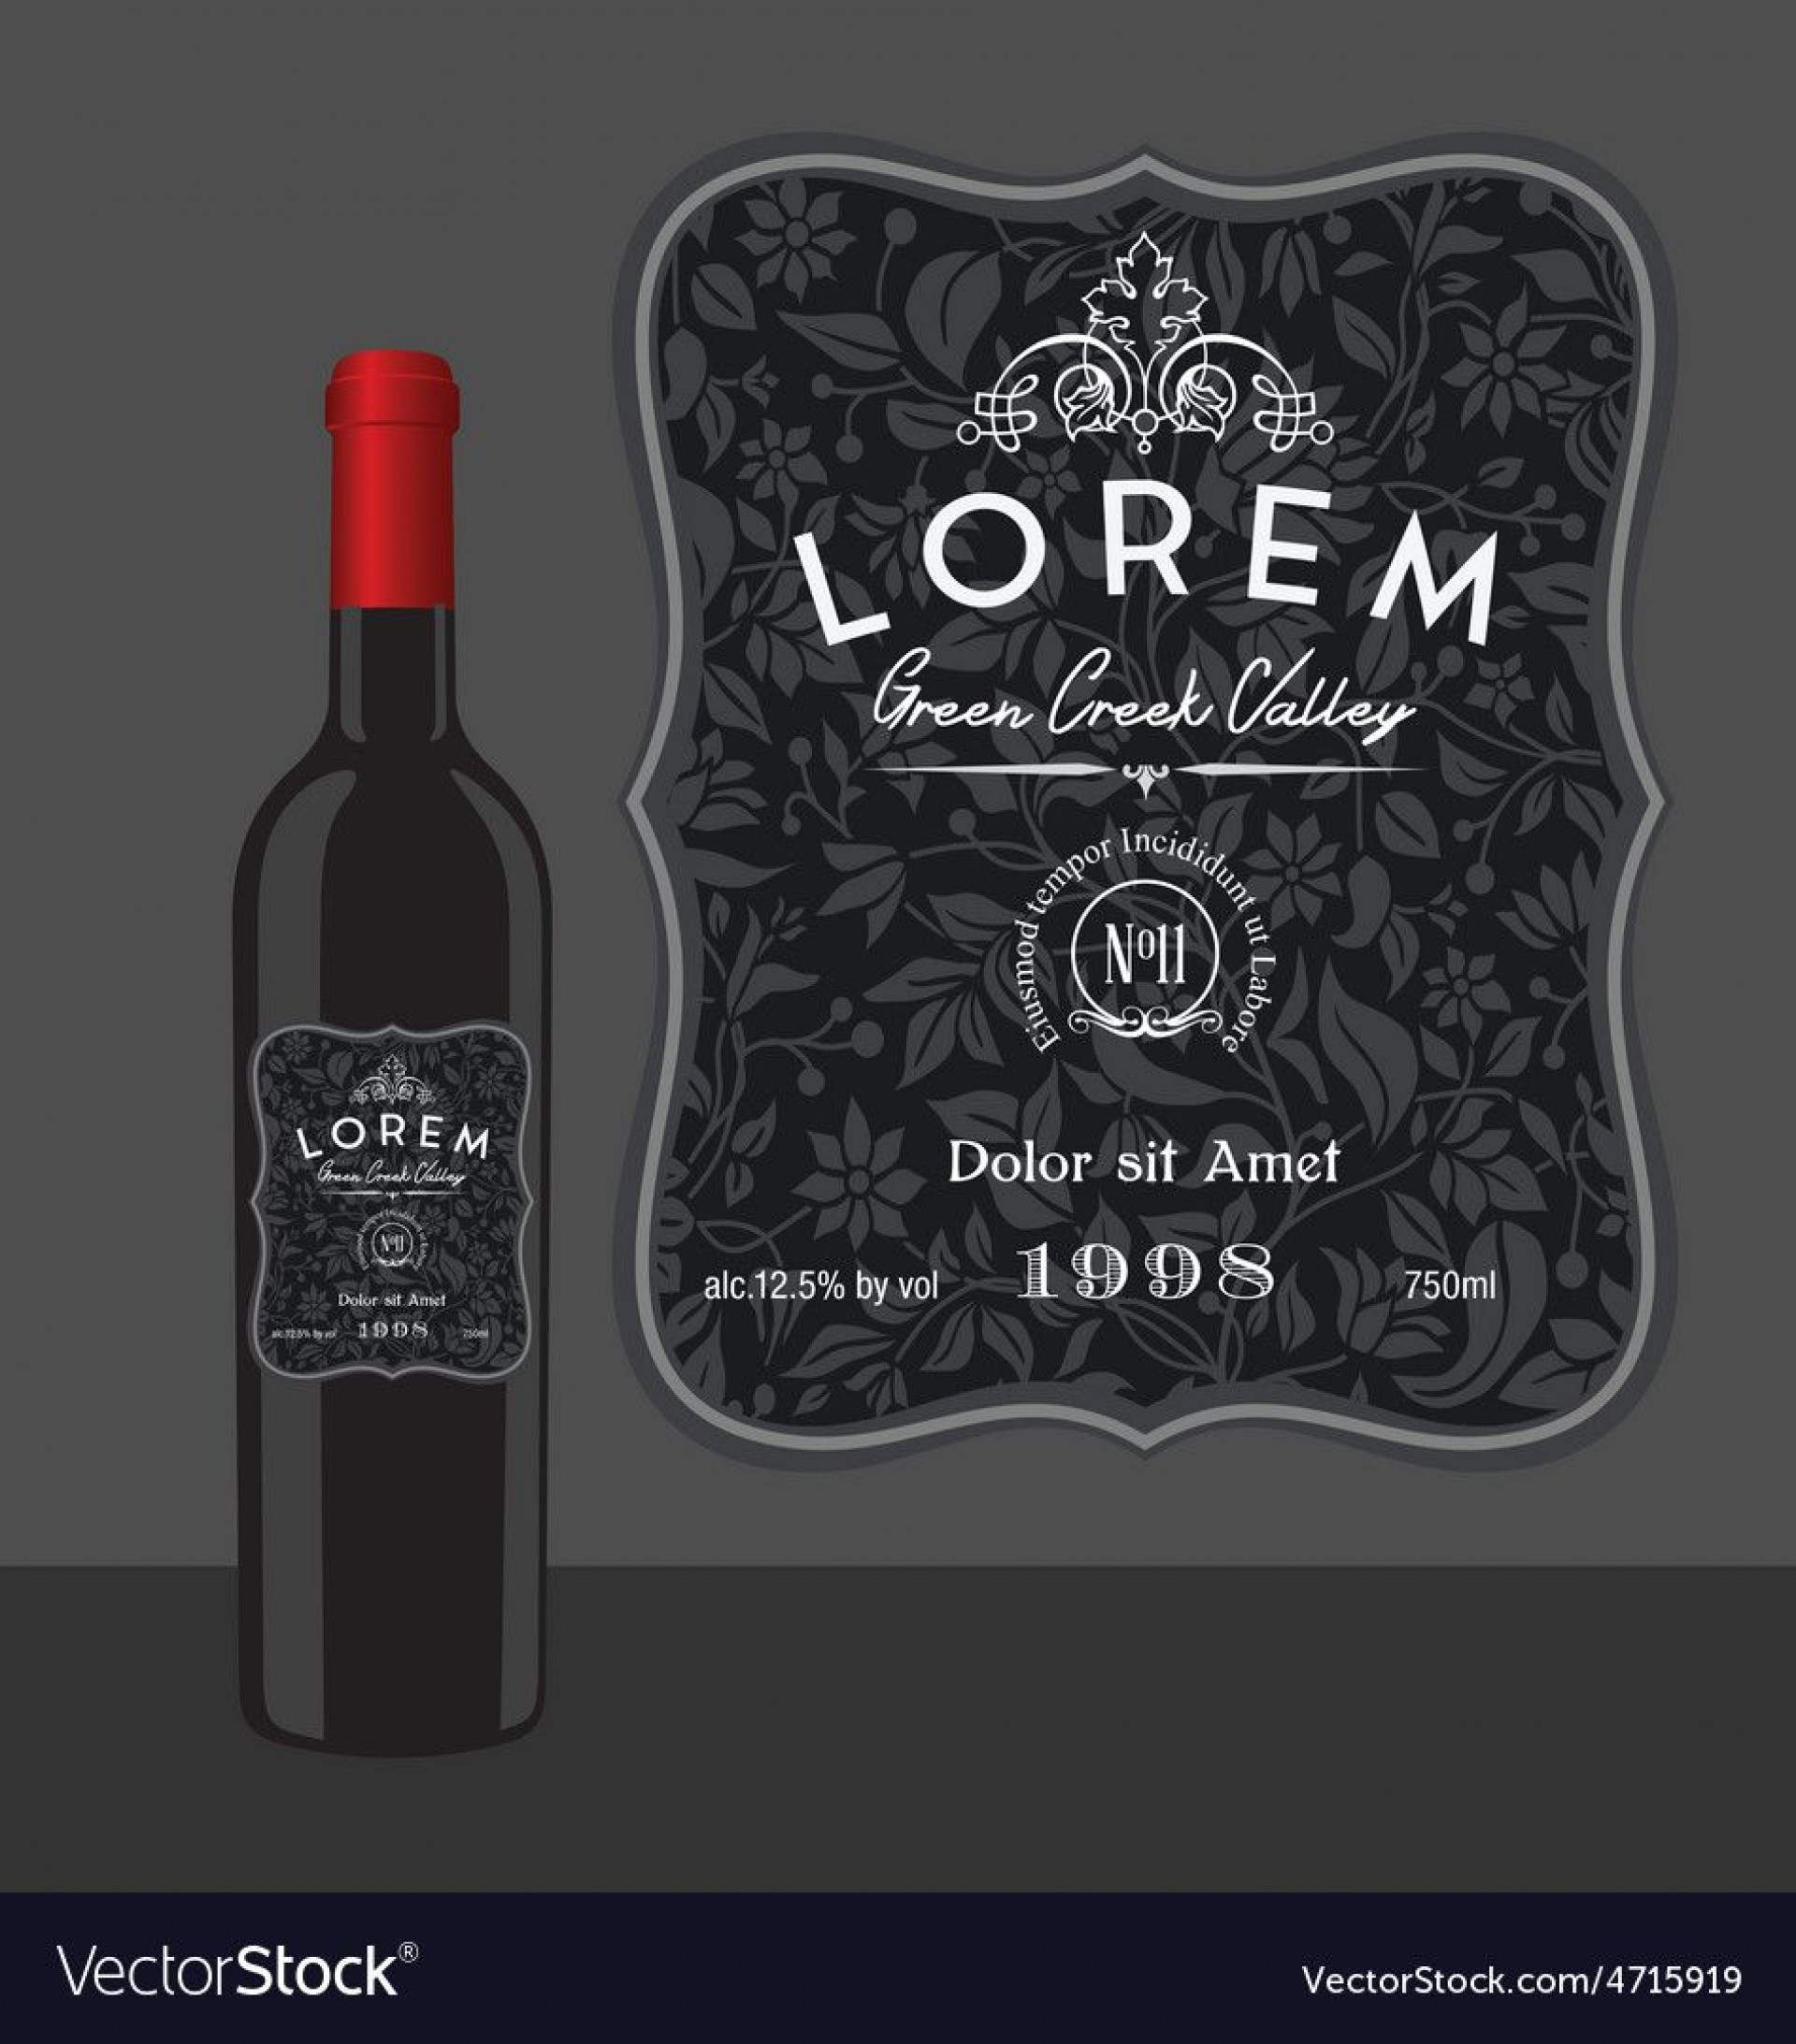 008 Breathtaking Bottle Label Template Free Example  Mini Wine Water Birthday Champagne Download1920